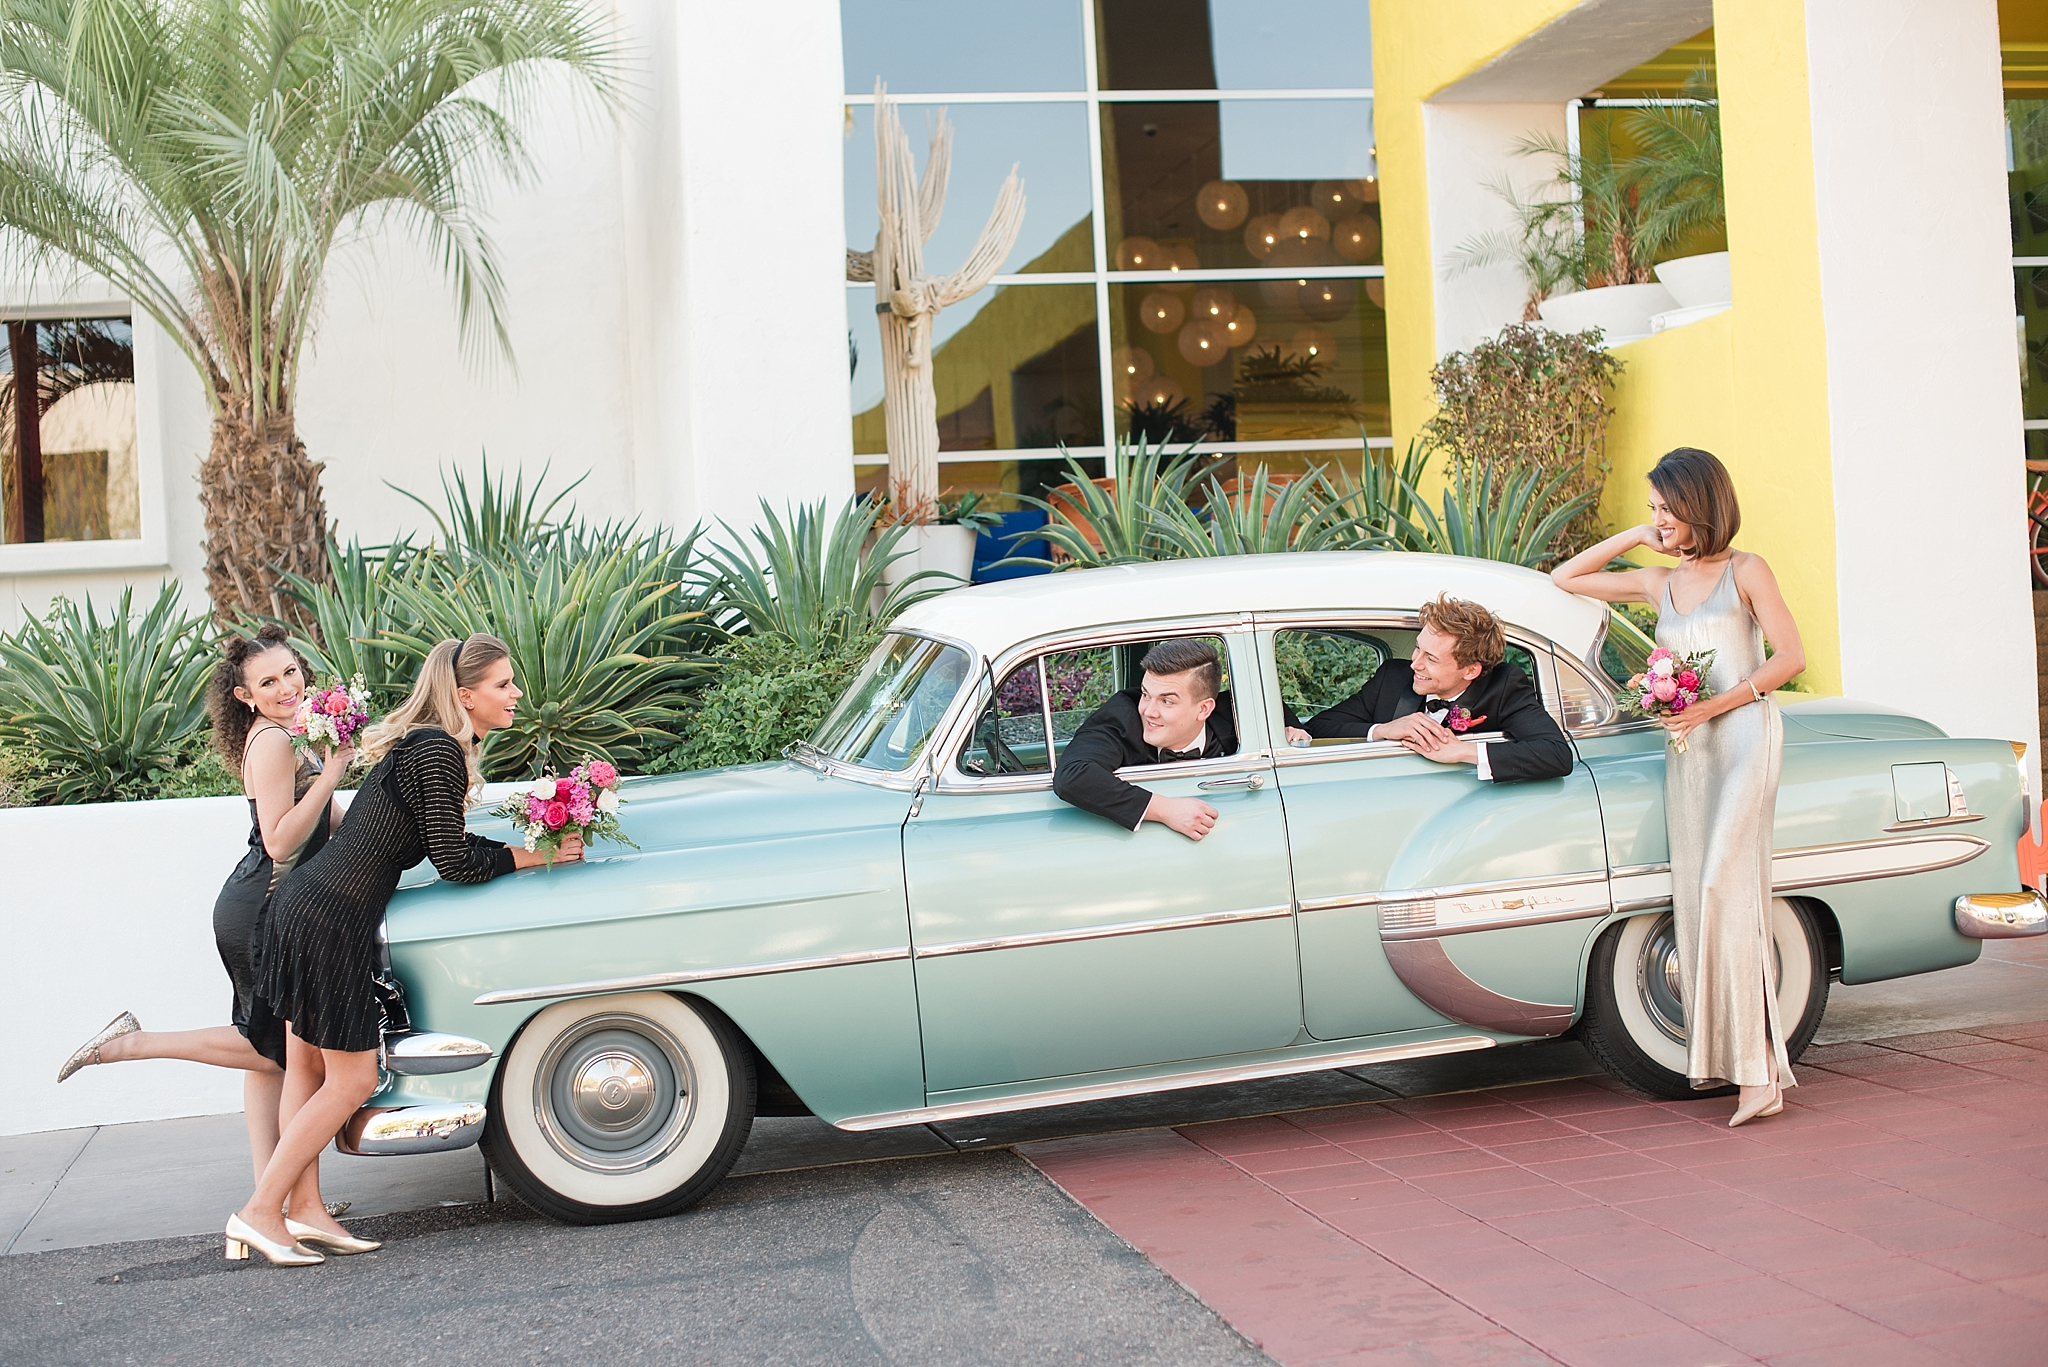 Vintage car provided by Roscoe + Louie. Bridesmaids wearing fashions by Zara, hair and makeup done by Makiaj Beauty, and jewelry by @francesvintage. Groom models Zach Jones & Seth Powers wearing tuxes provided by Celebrity Tux & Tails. Photos taking by Jade Min Photography at The Saguaro Scottsdale.